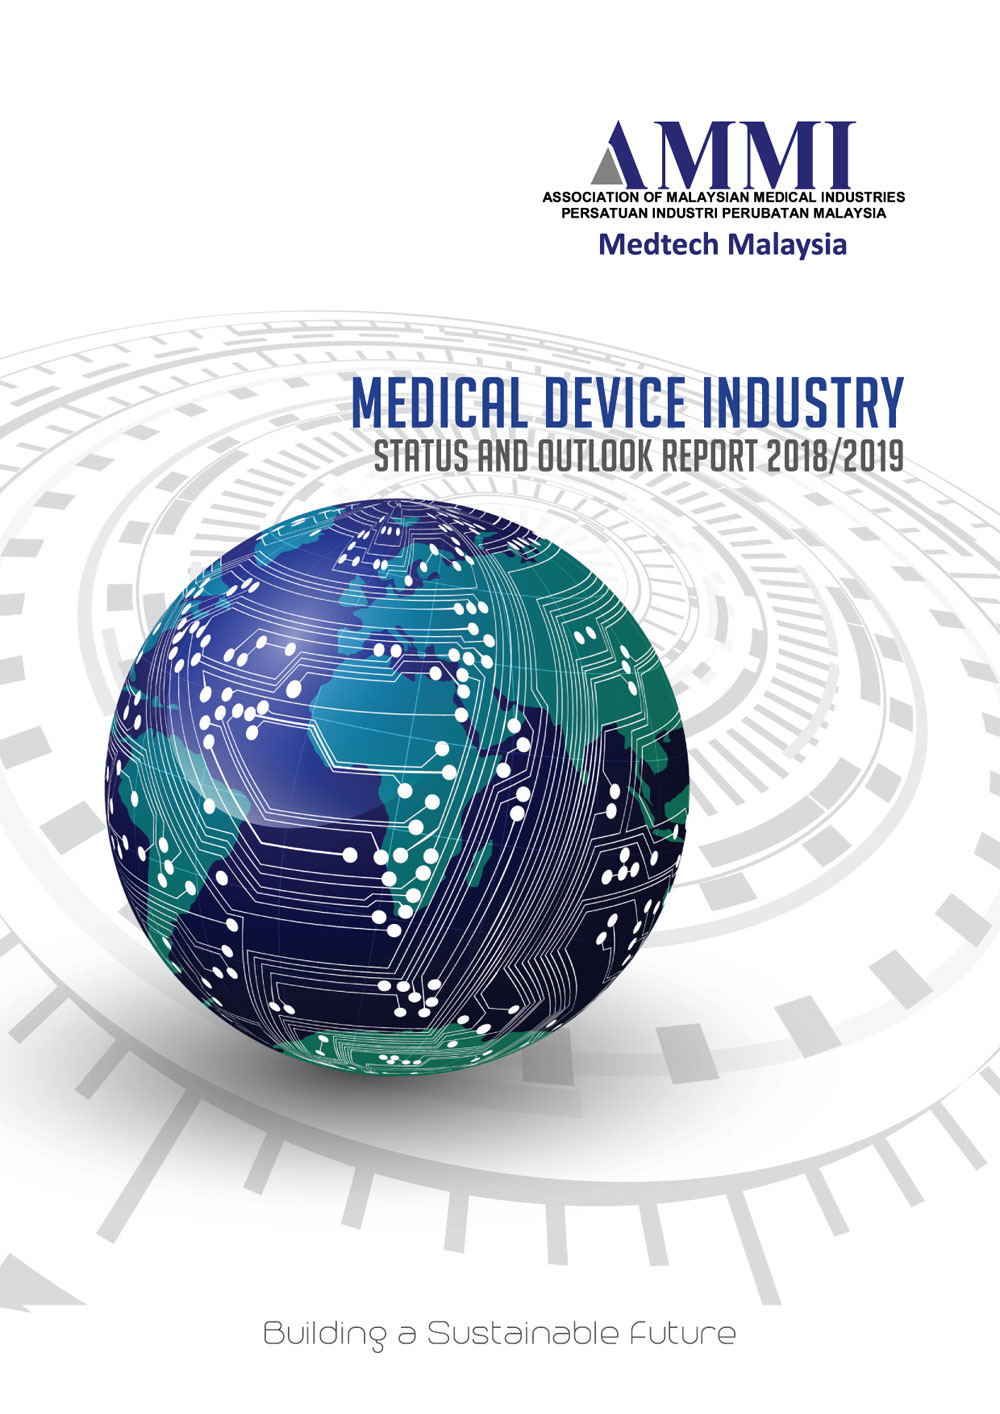 AMMI Medical Device Industry Status and Outlook Report 2018/2019